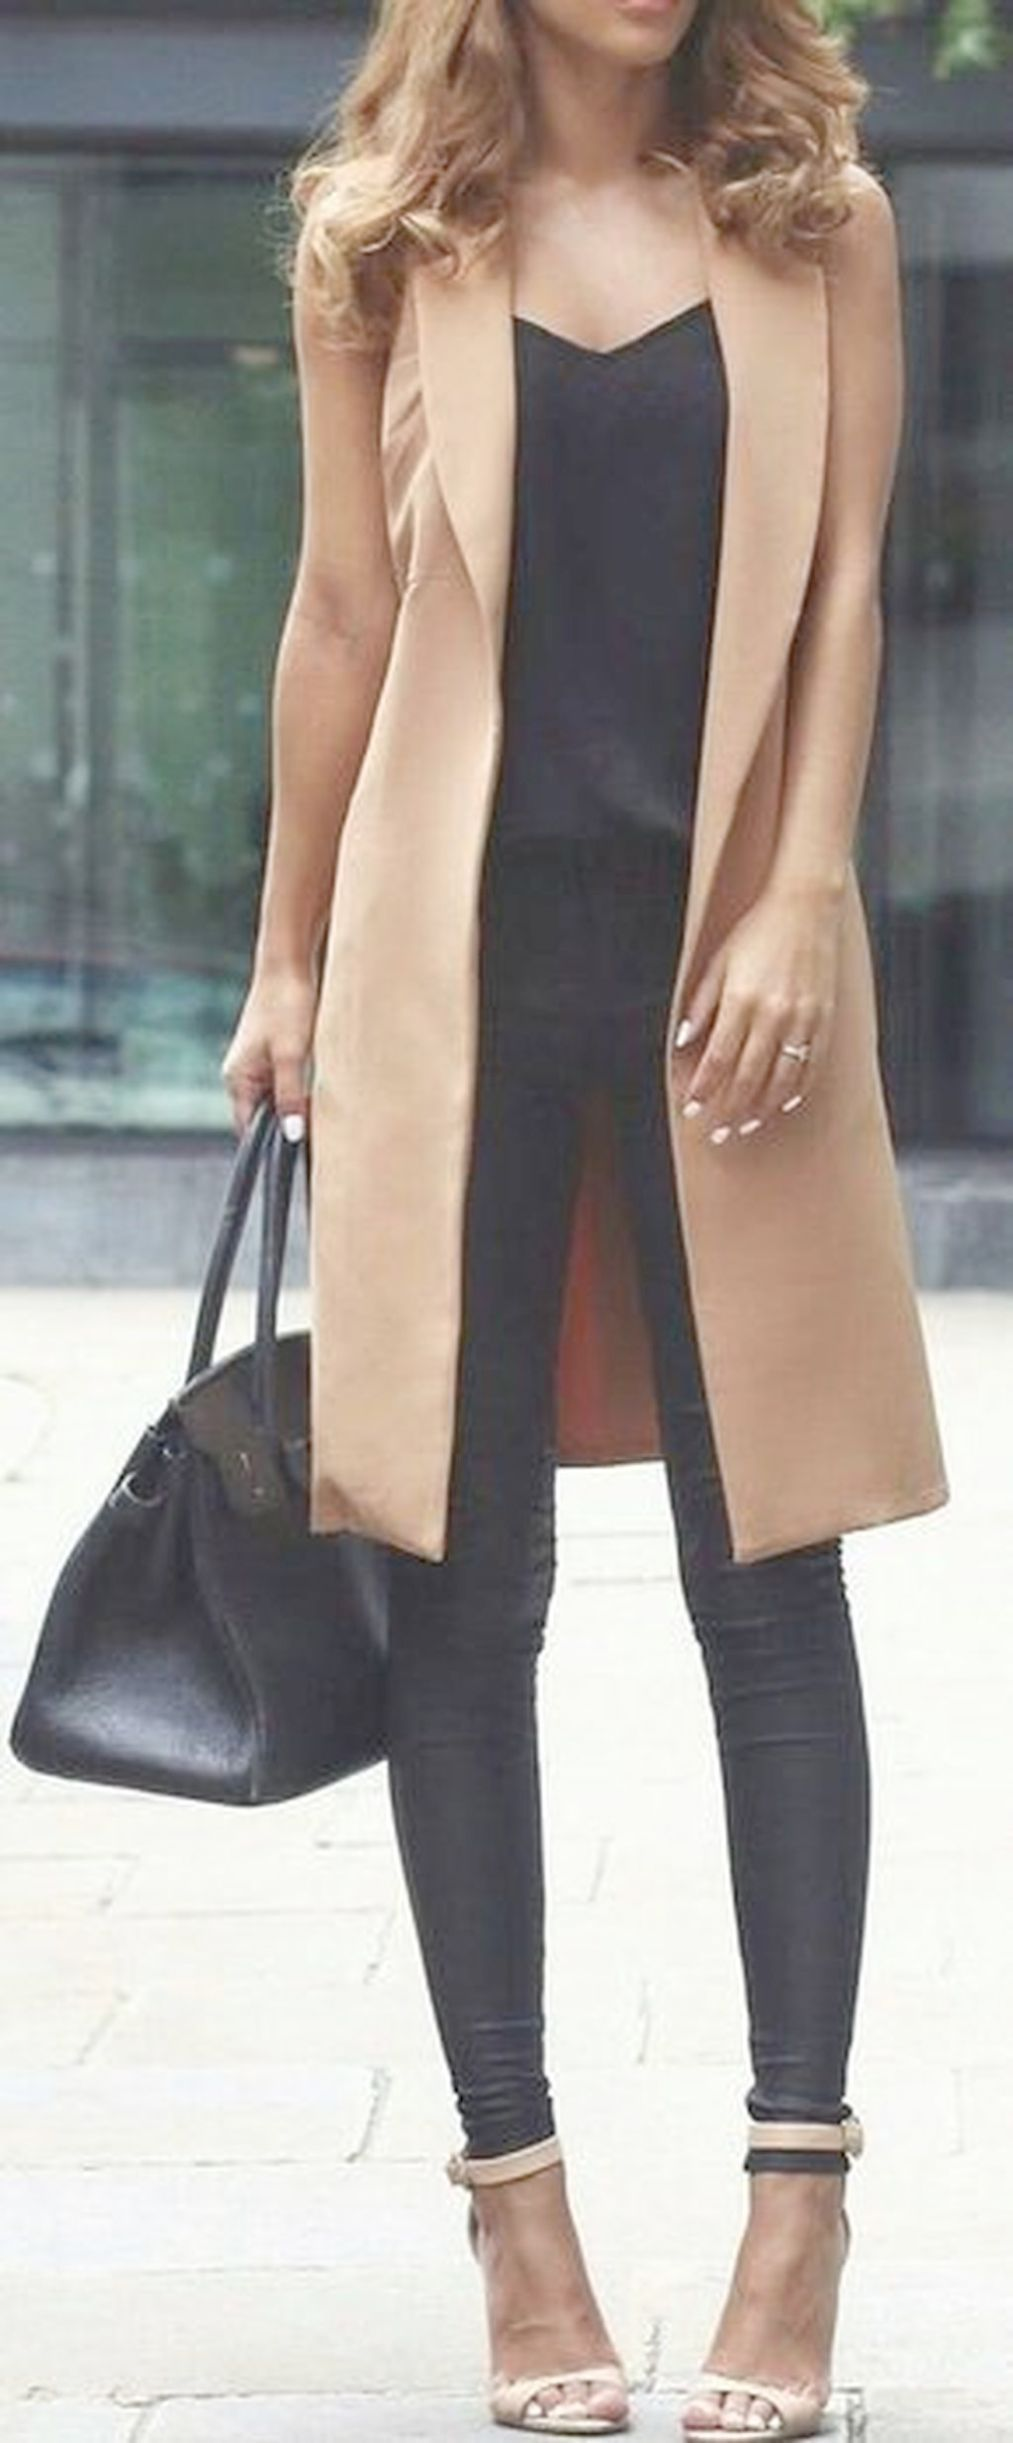 Outfit ideas job interview fancy dress ideas on nature and